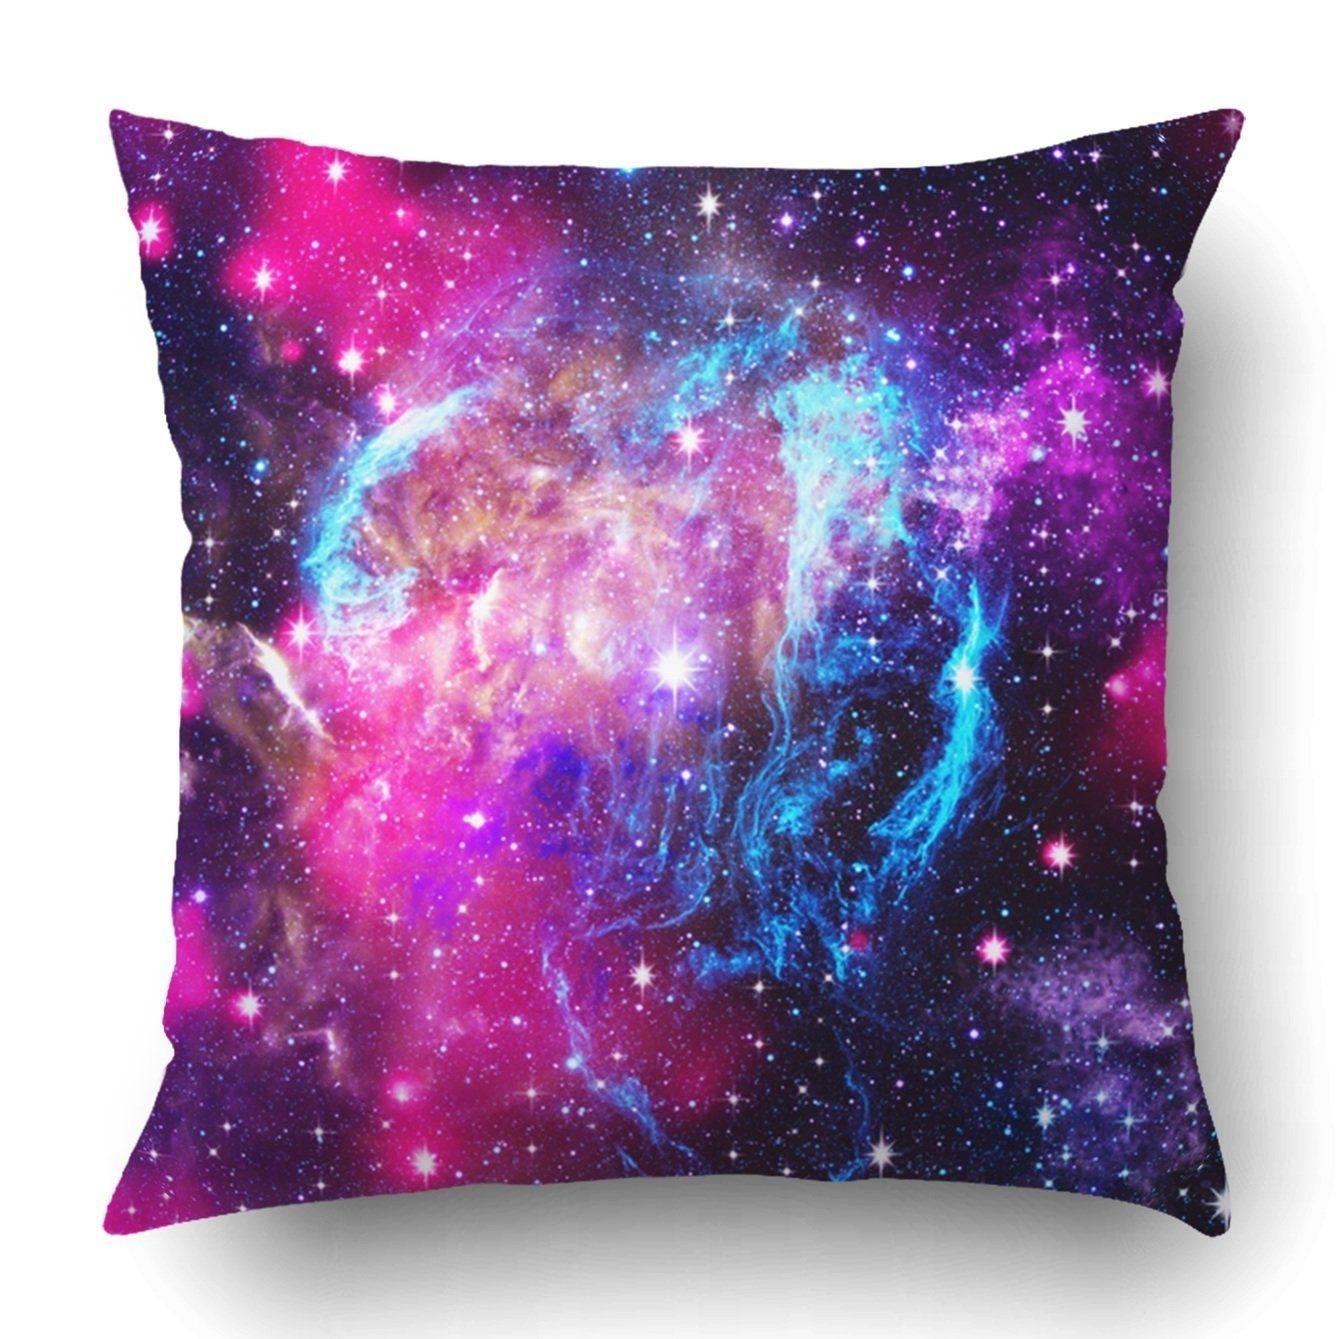 Deep Space Abstract Natural Backgrounds Pillowcase Throw Pillow Cover Case 16x16 Inches In 2020 Galaxy Room Galaxy Bedroom Small Room Design